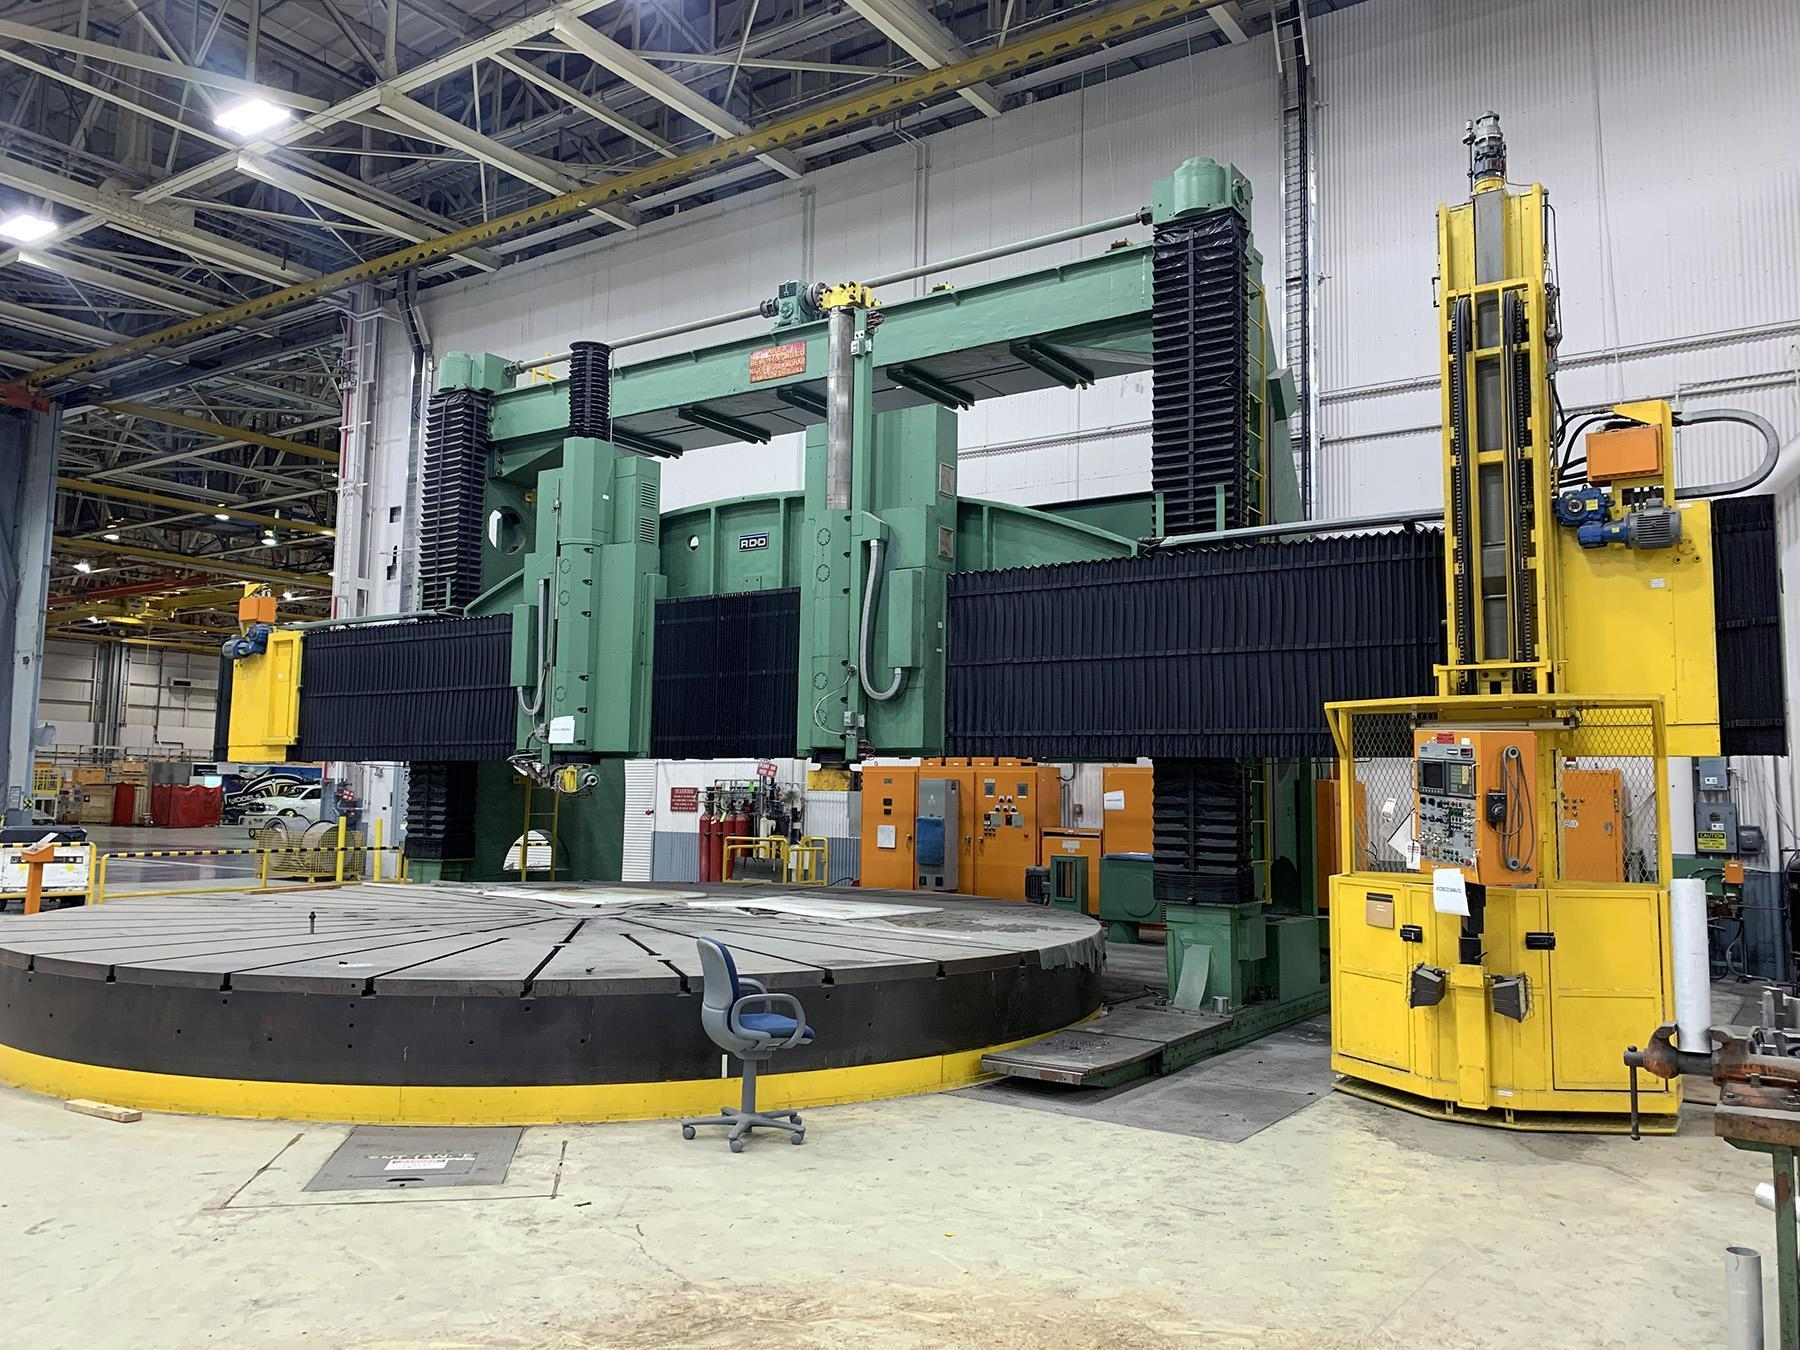 "USED, 504"" (42') RD&D - Dorries Scharmann / NILES CNC VERTICAL BORING MILL WITH LIVE TOOL"